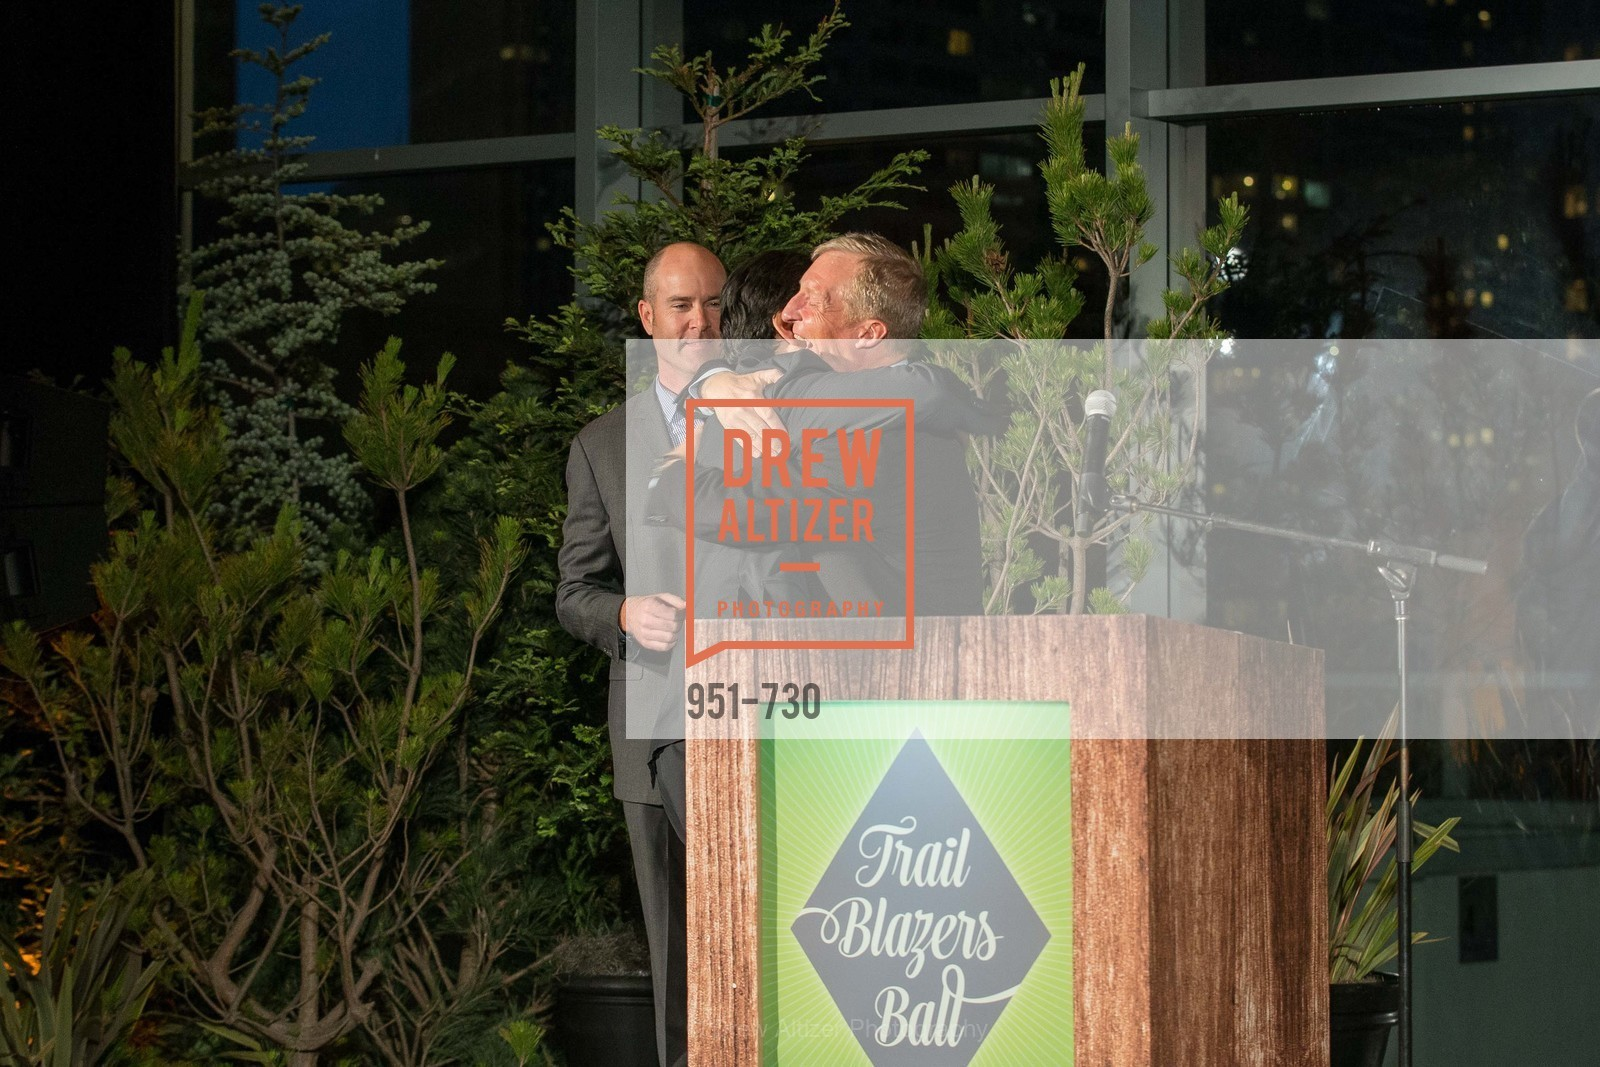 State Senator Kevin DeLeon, Michael Brune, Tom Steyer, 2015 SIERRA CLUB Trail Blazers Ball, US, May 16th, 2015,Drew Altizer, Drew Altizer Photography, full-service agency, private events, San Francisco photographer, photographer california